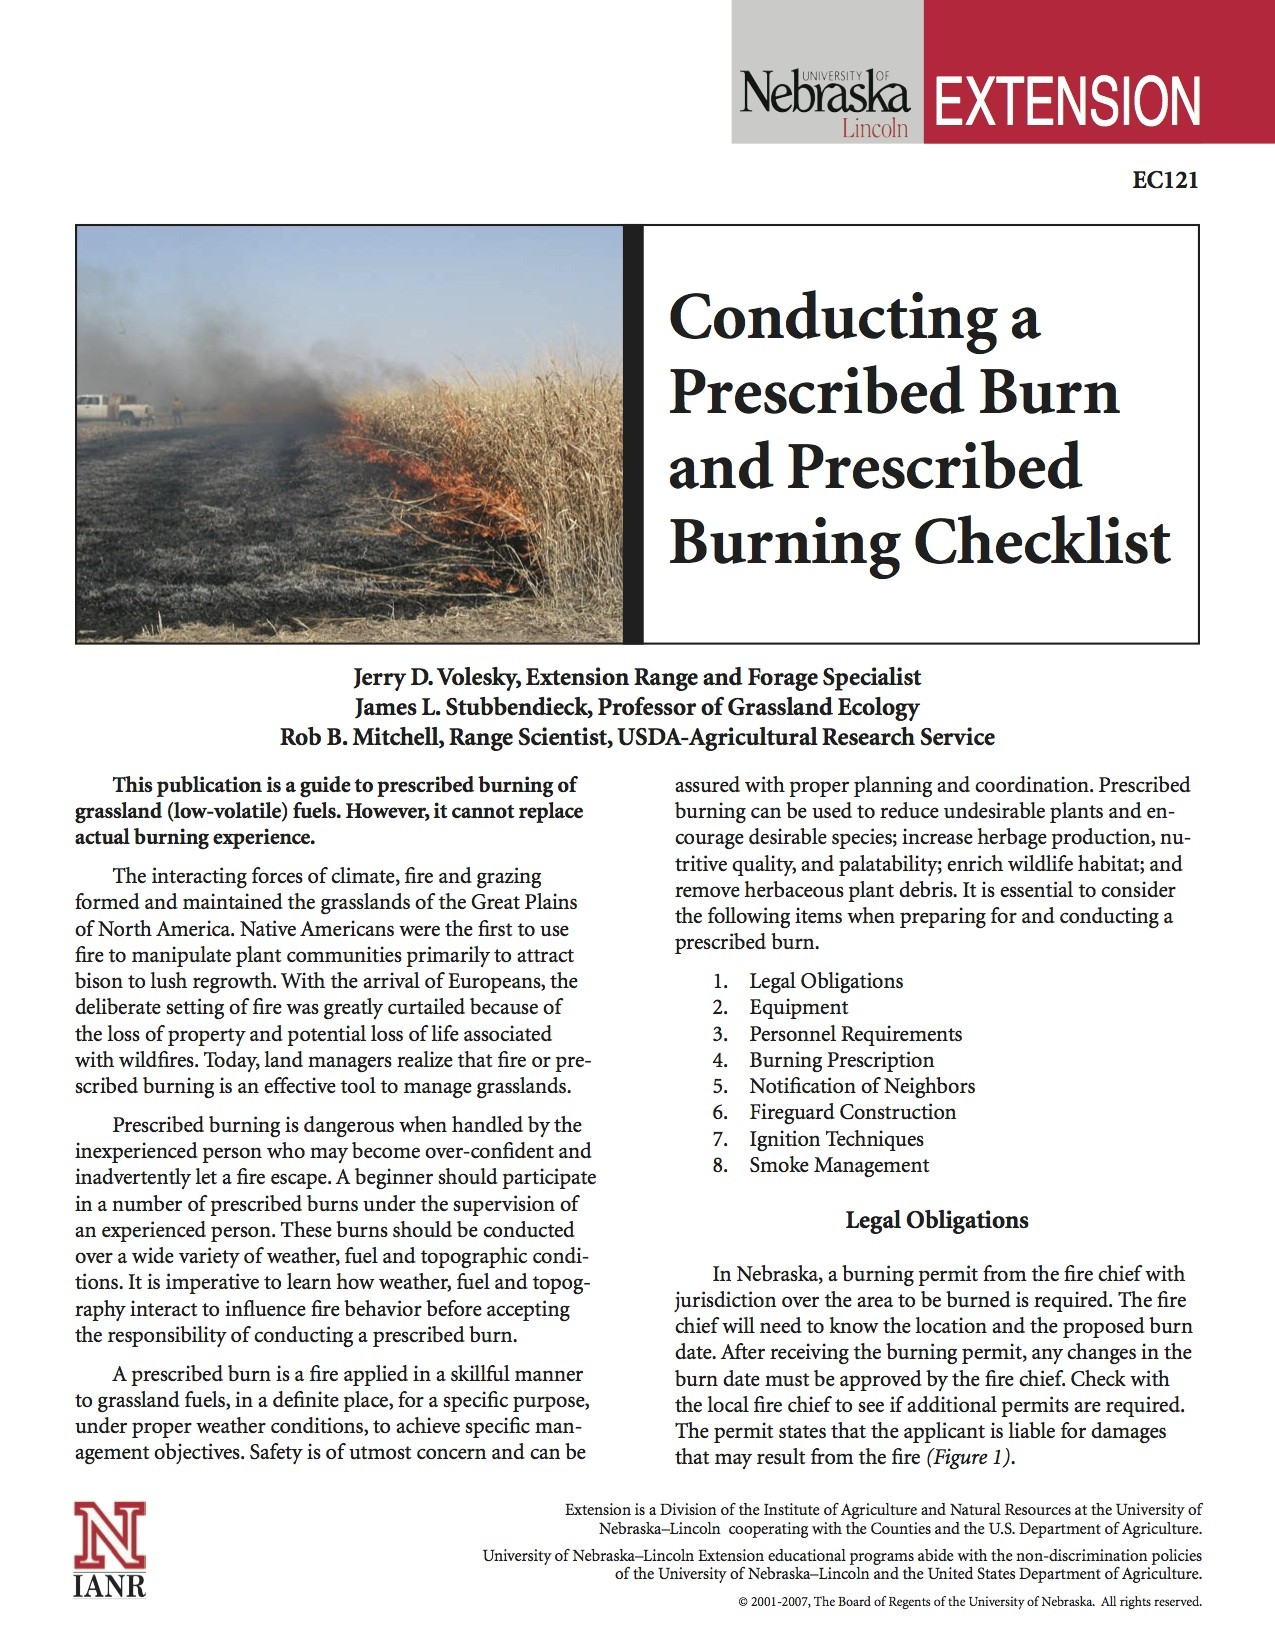 Conducting a Prescribed Burn and Prescribed Burning Checklist